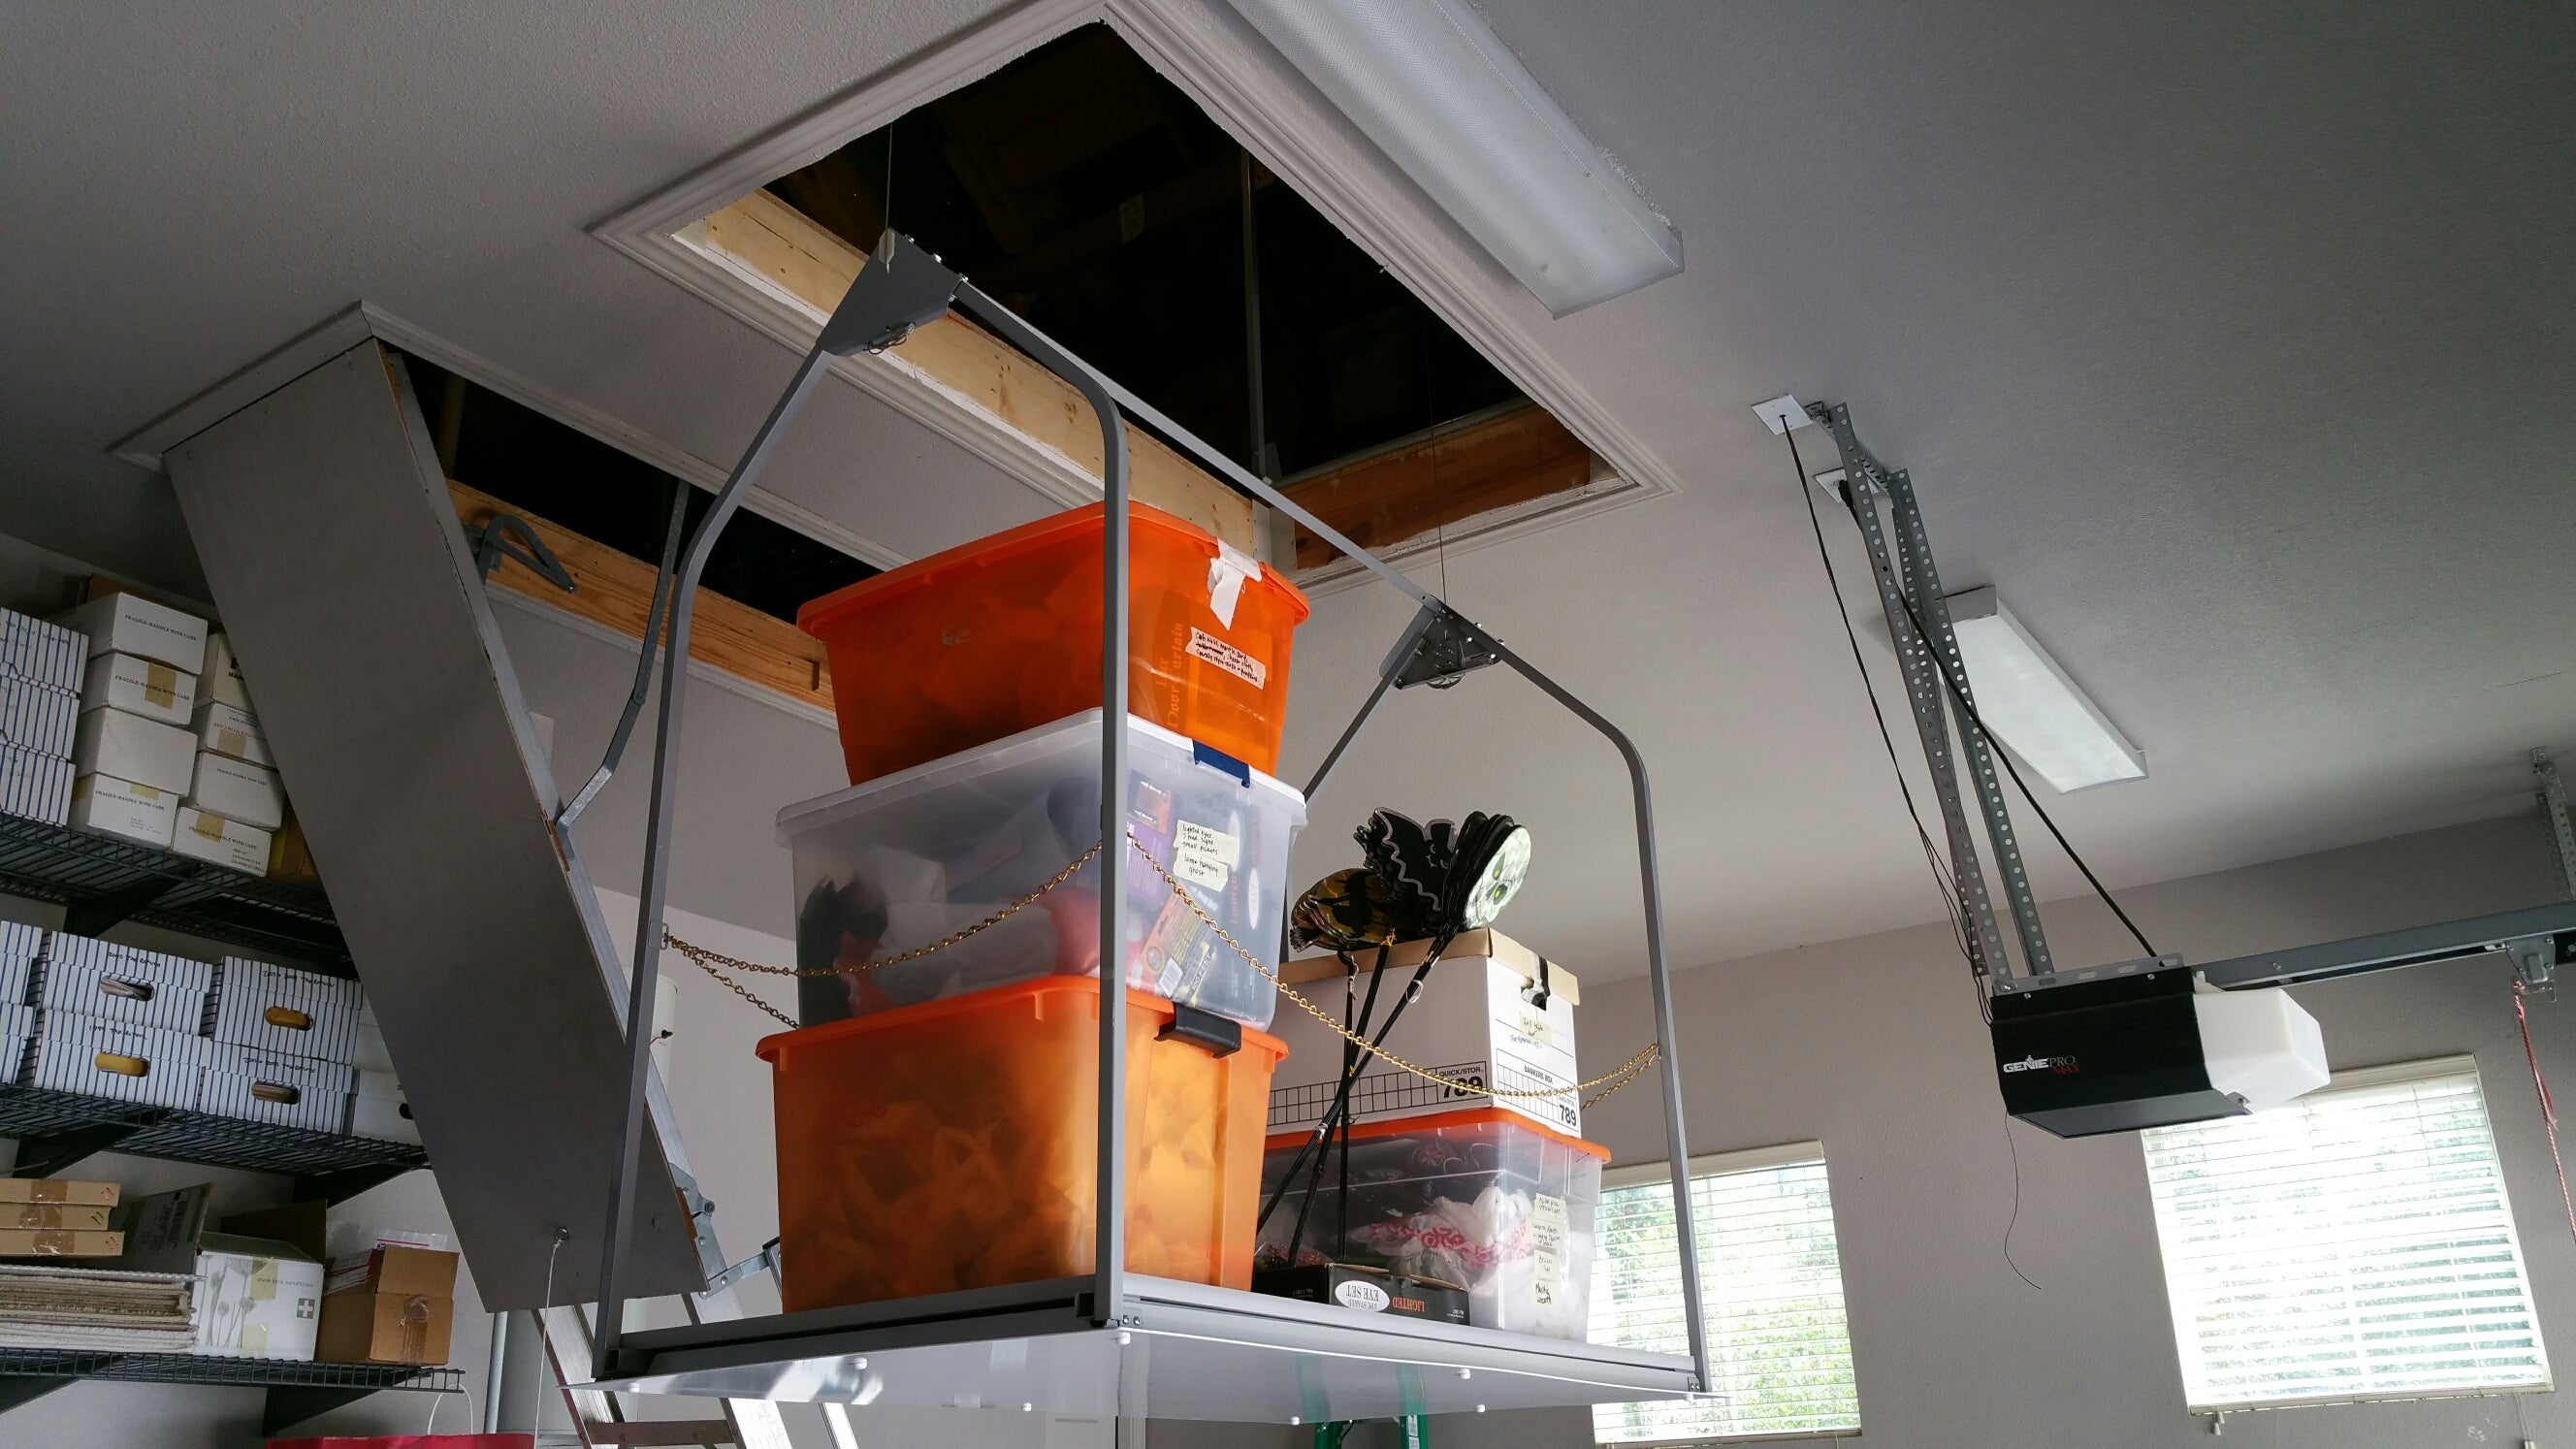 attic lift with orange containers